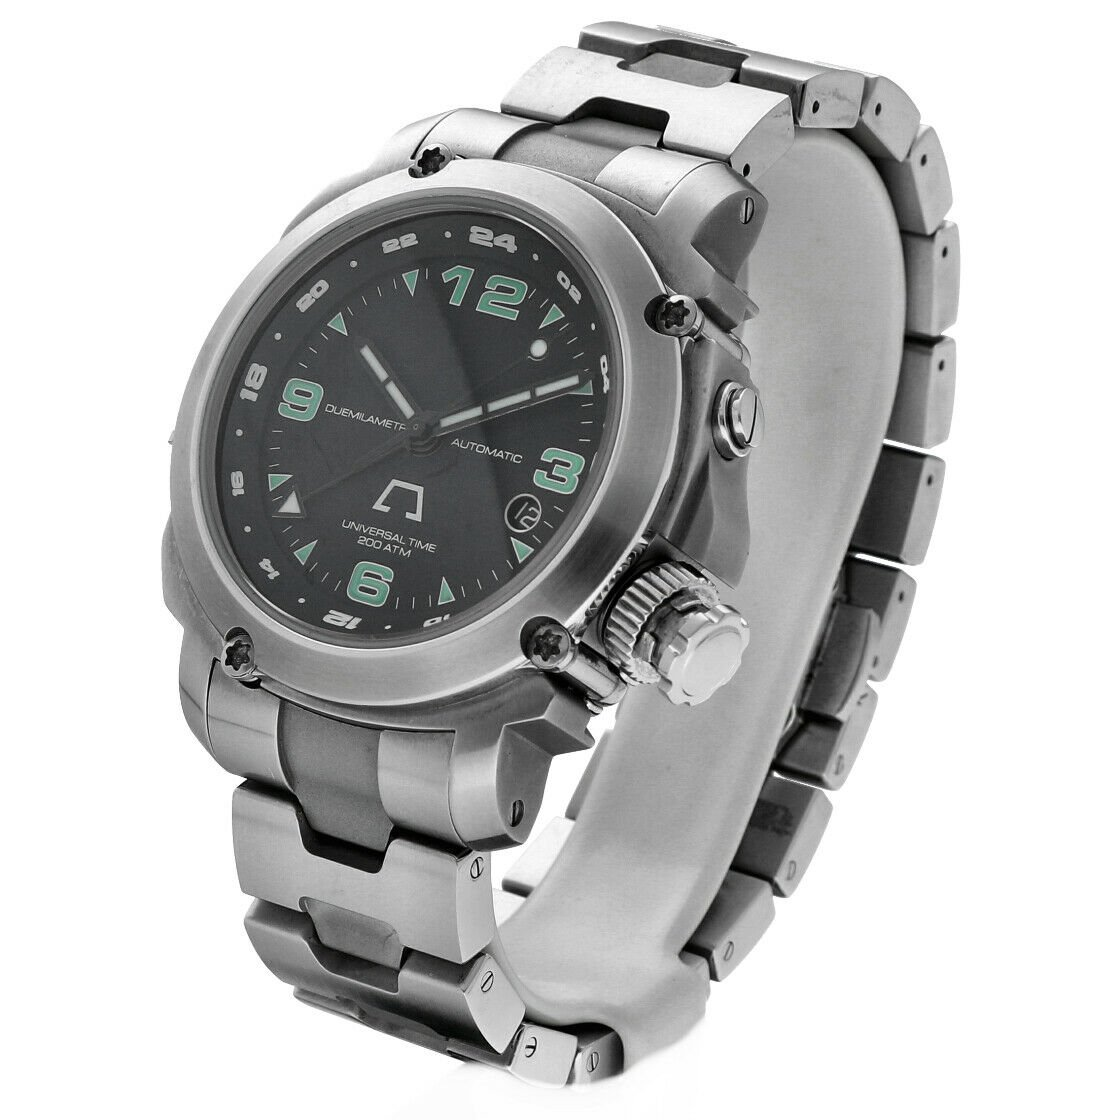 Anonimo Universal Time 6001 Professional GMT Steel 44mm Automatic Mens Watch 133445901887 2